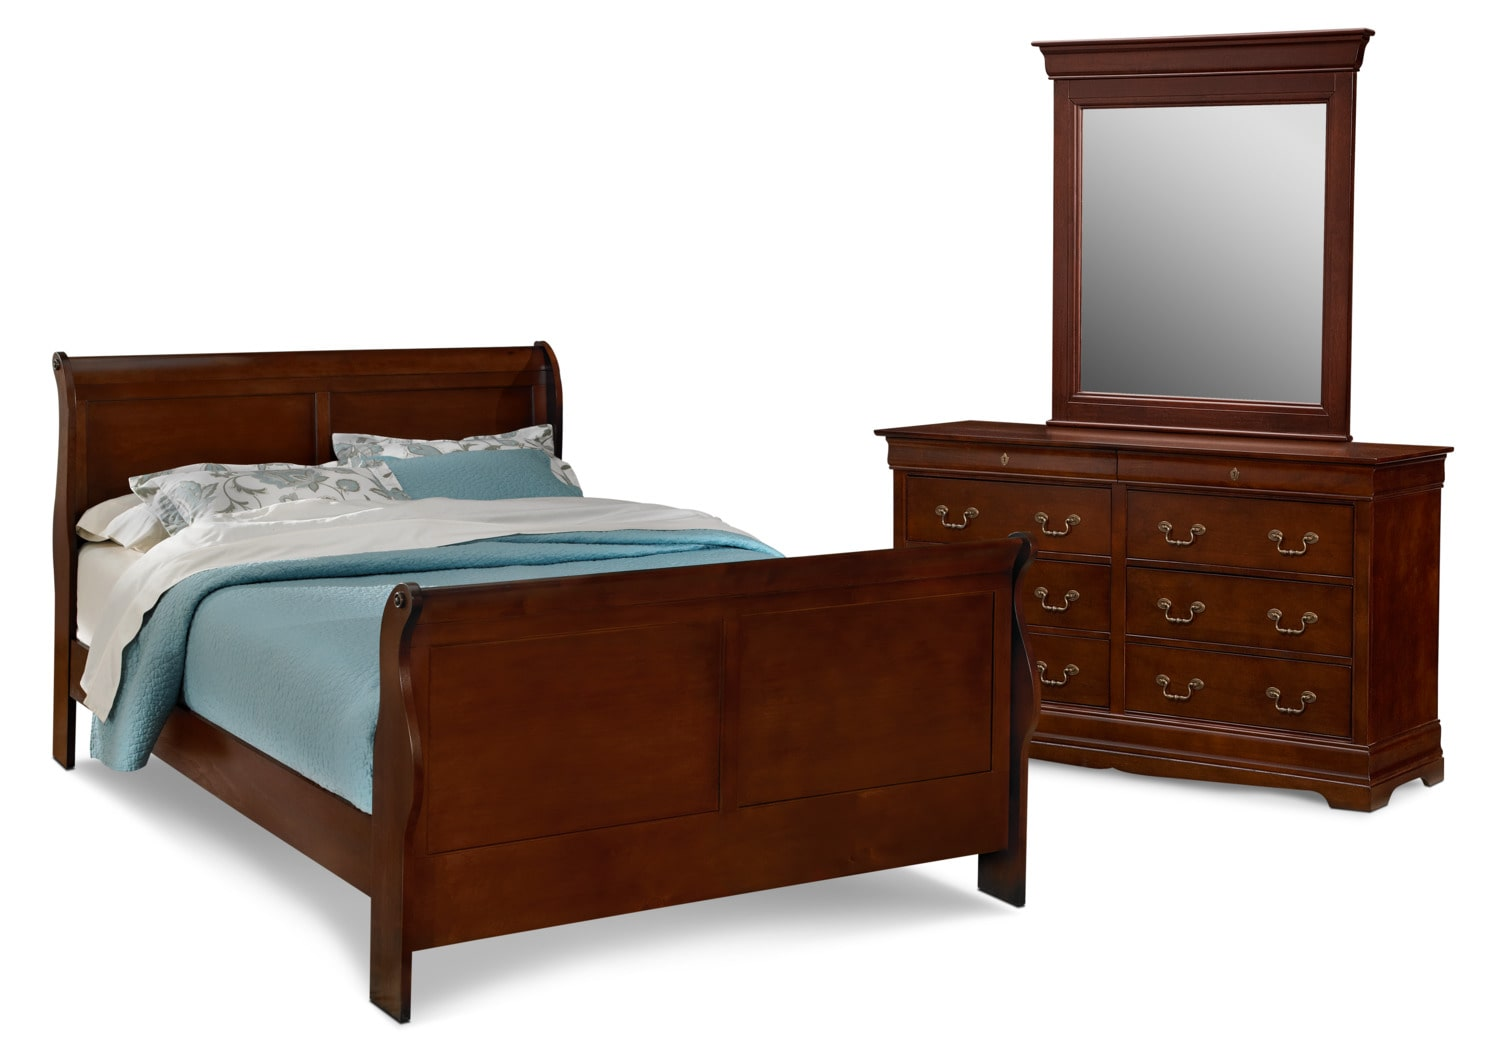 Awesome Neo Classic 5 Piece Queen Bedroom Set   Cherry Nice Design